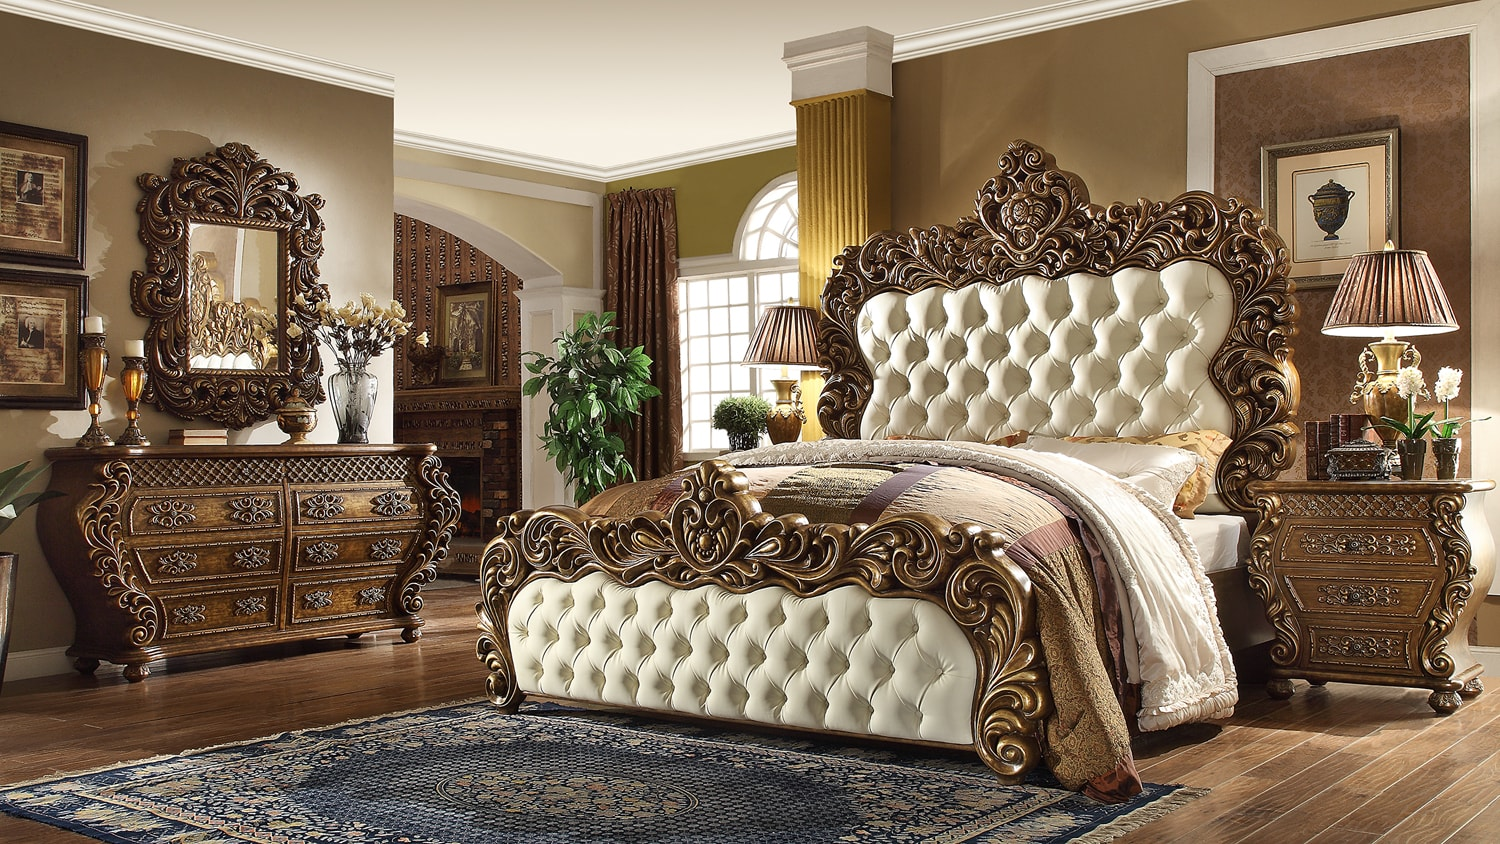 4 Piece Traditional Hd 8011 Bedroom Set King Size Only Mindys Home Goods